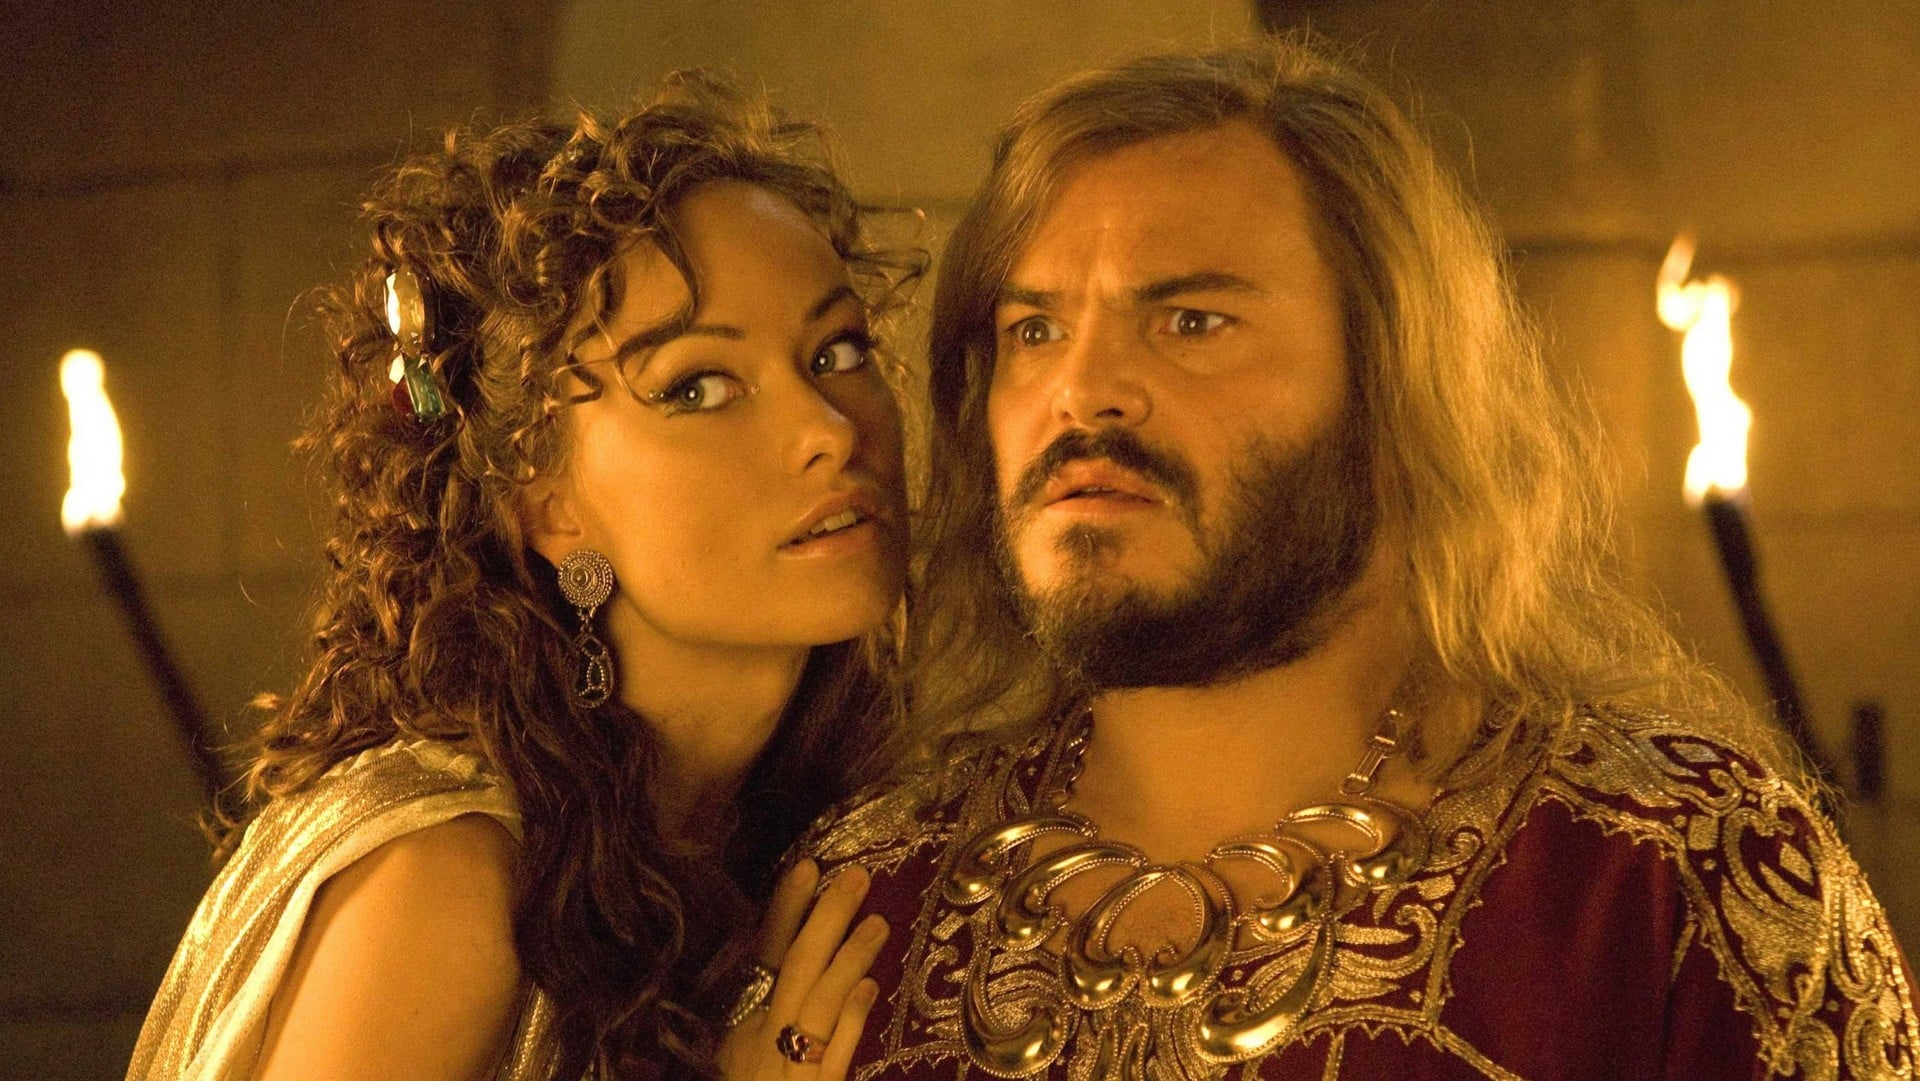 Zed (Jack Black) and Princess Inanna (Olivia Wilde) in Year One (2009)